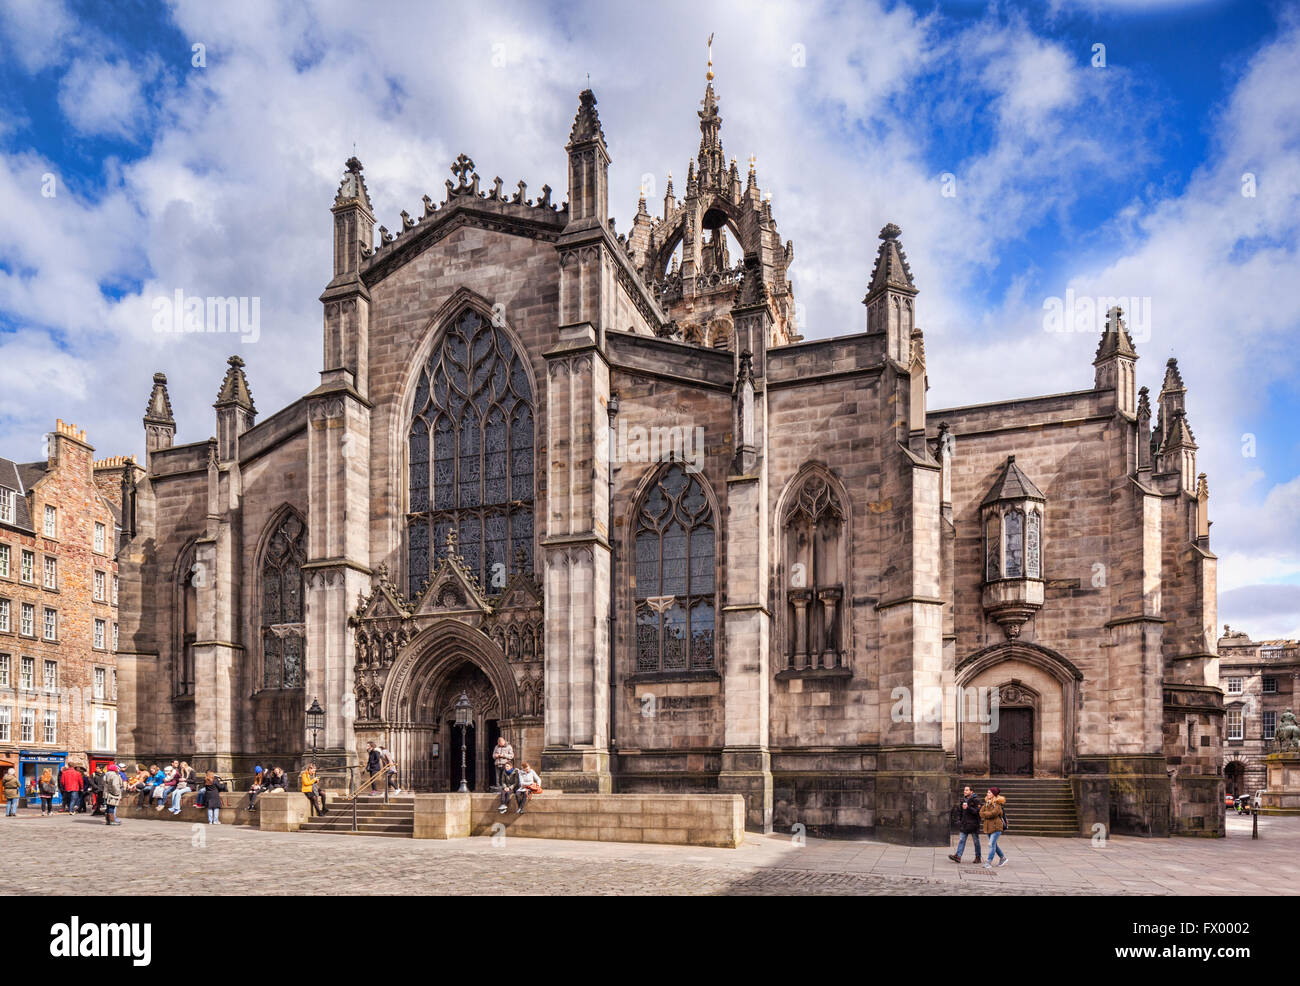 St Giles Cathedral, Edinburgh, Scotland, UK Stock Photo